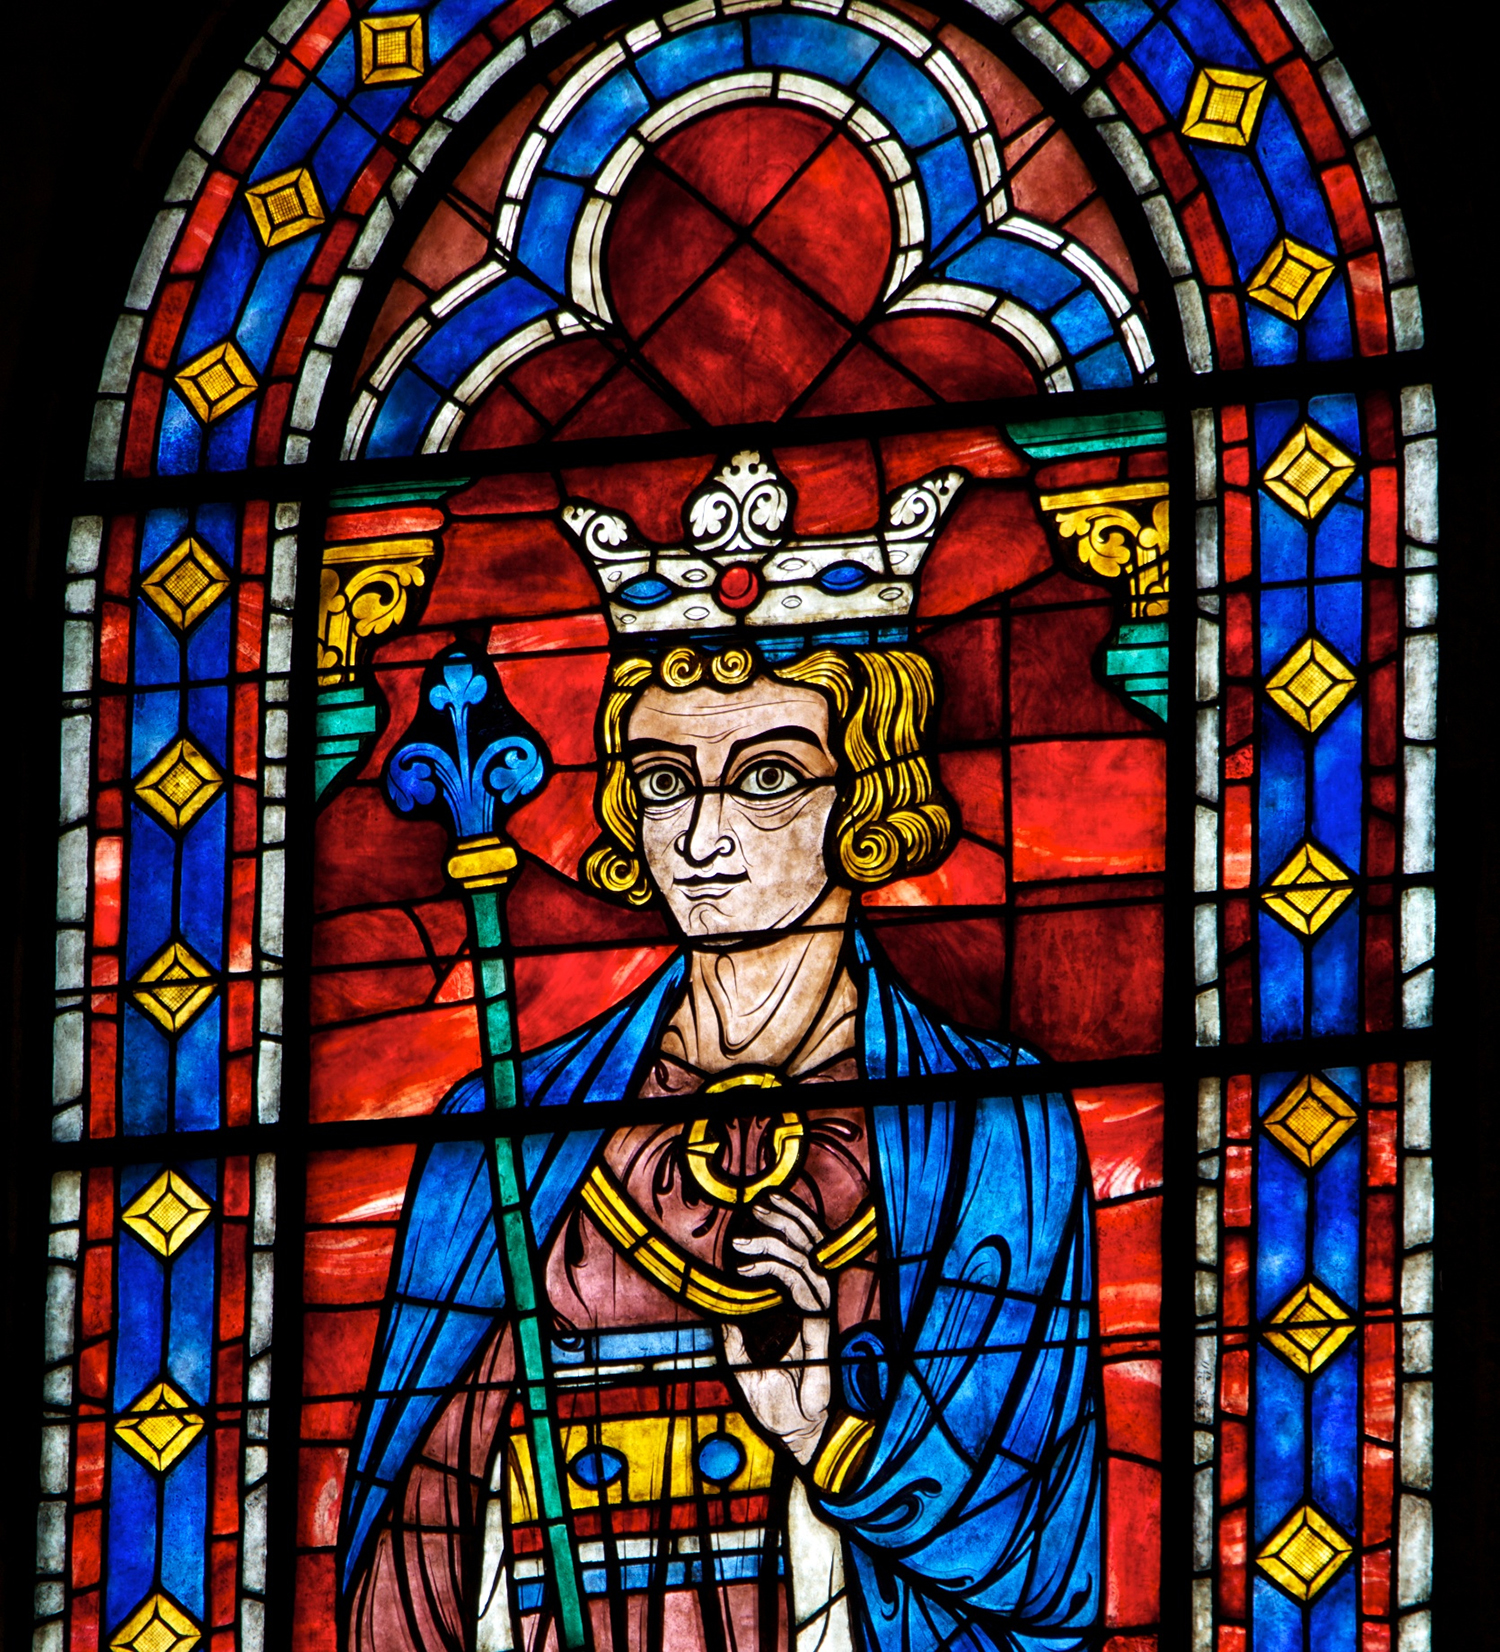 Figure 6: This early 20th-century reproduction of a stained glass window in Chartres Cathedral depicts King Solomon. It was made in the Bryn Athyn glassworks in the 1930s for the north wall of Glencairn's Great Hall.